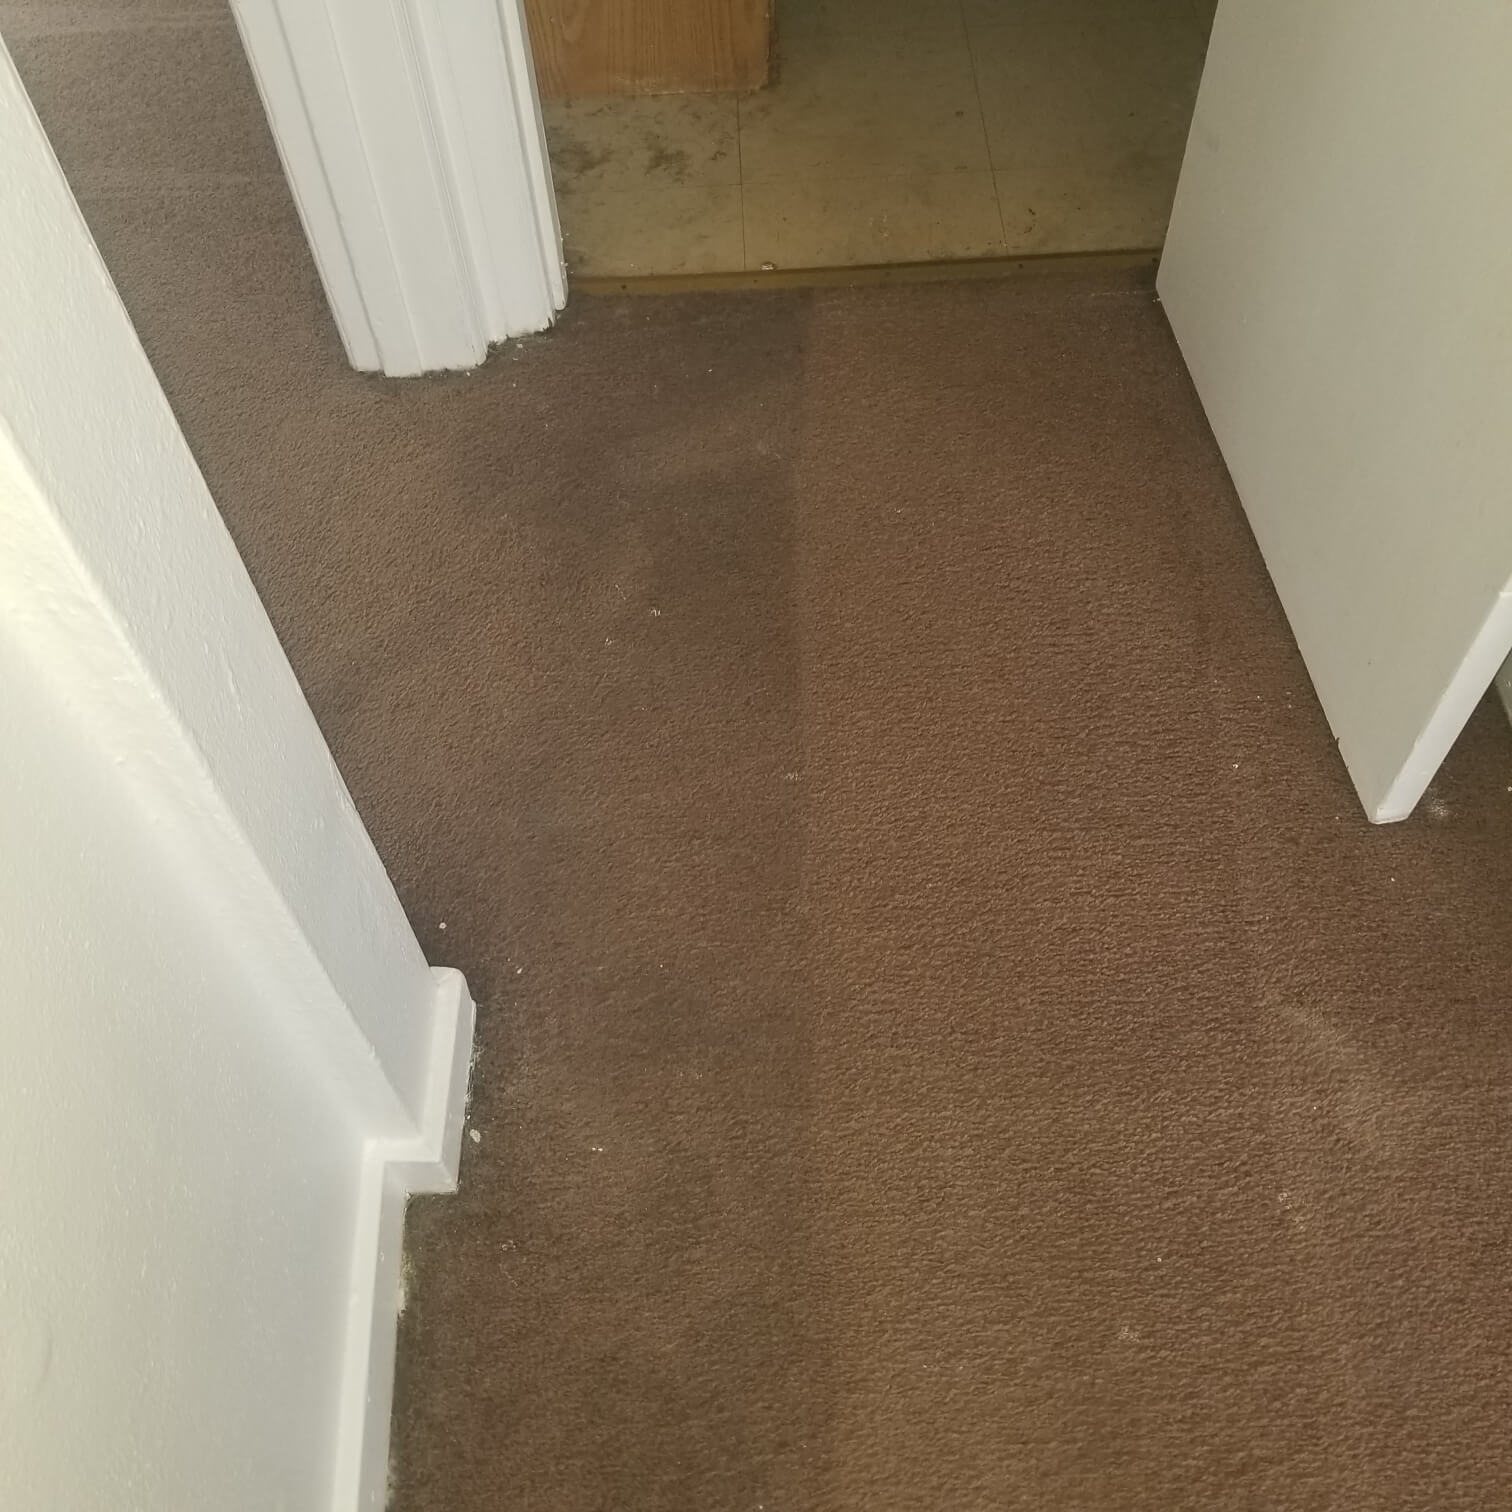 Before and after of a newly cleaned carpet from Stanley Steemer Rockford